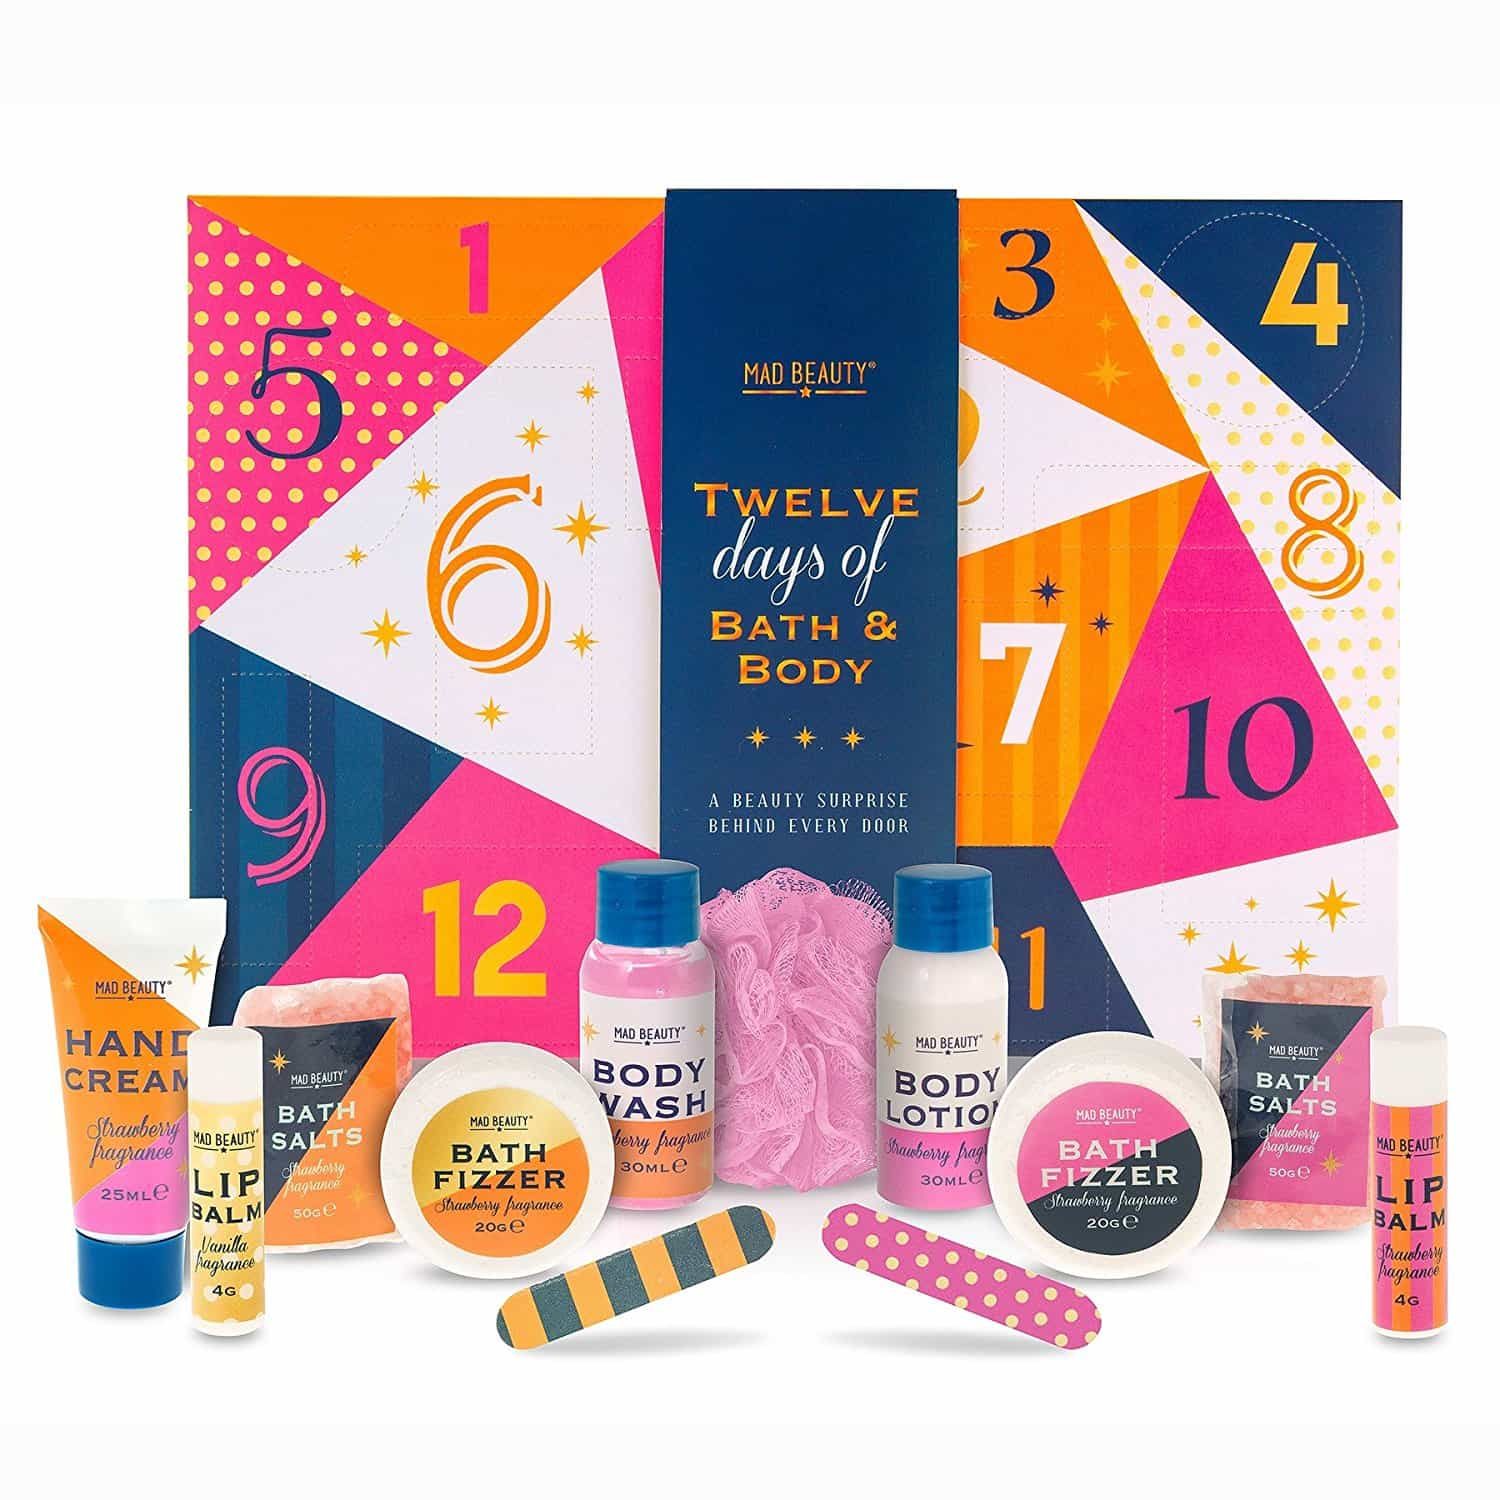 2017 Origins Beauty Advent Calendar Available Now + Full Spoilers!